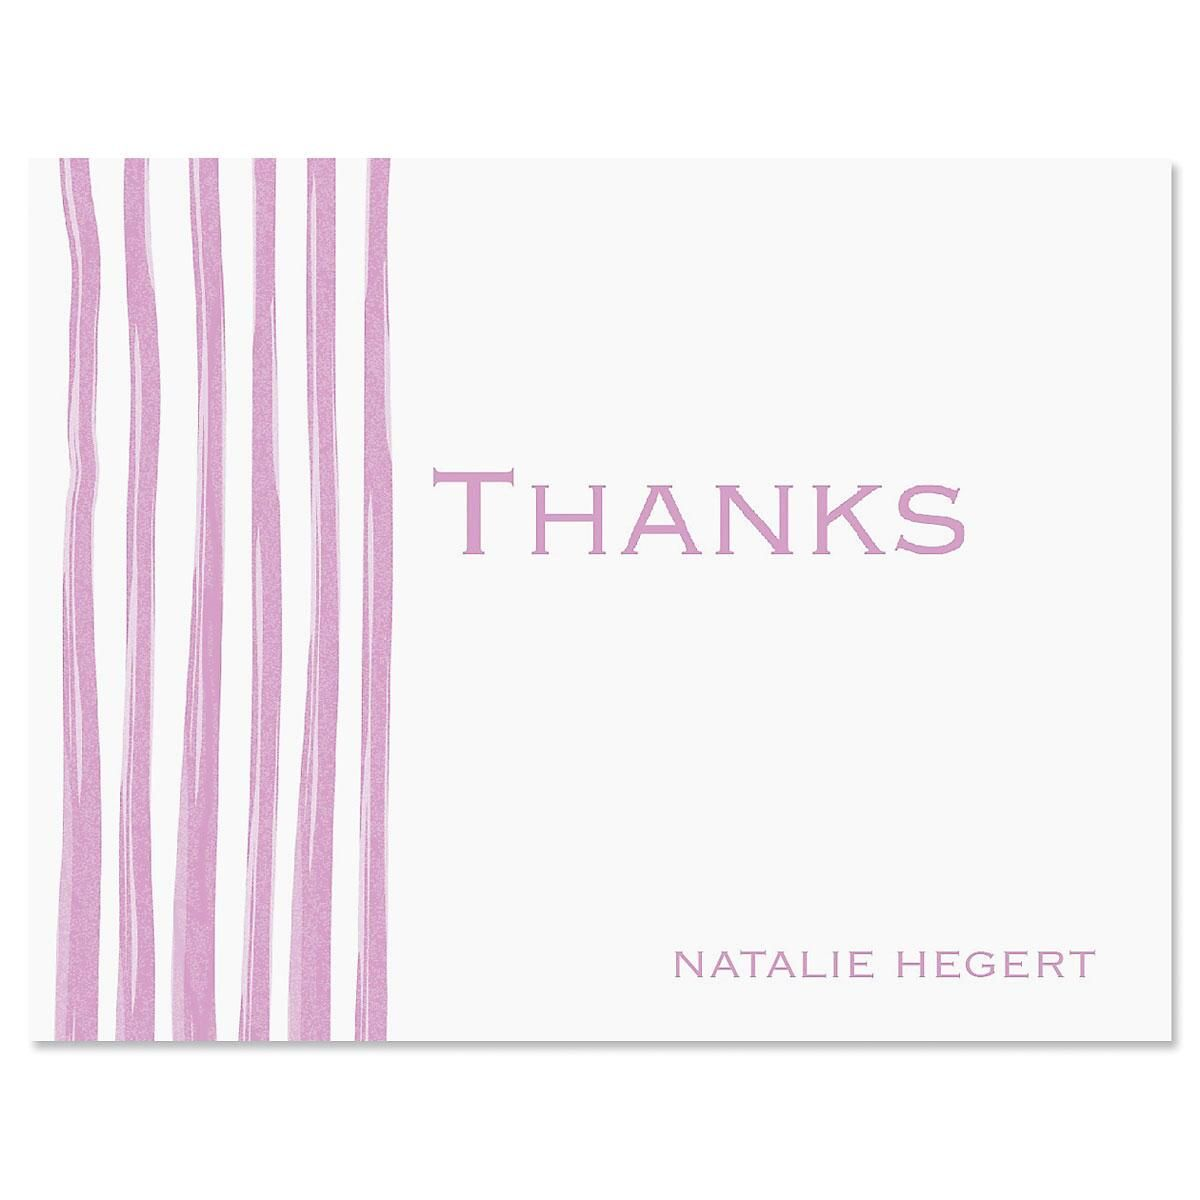 Sheer Delight Thank You Cards